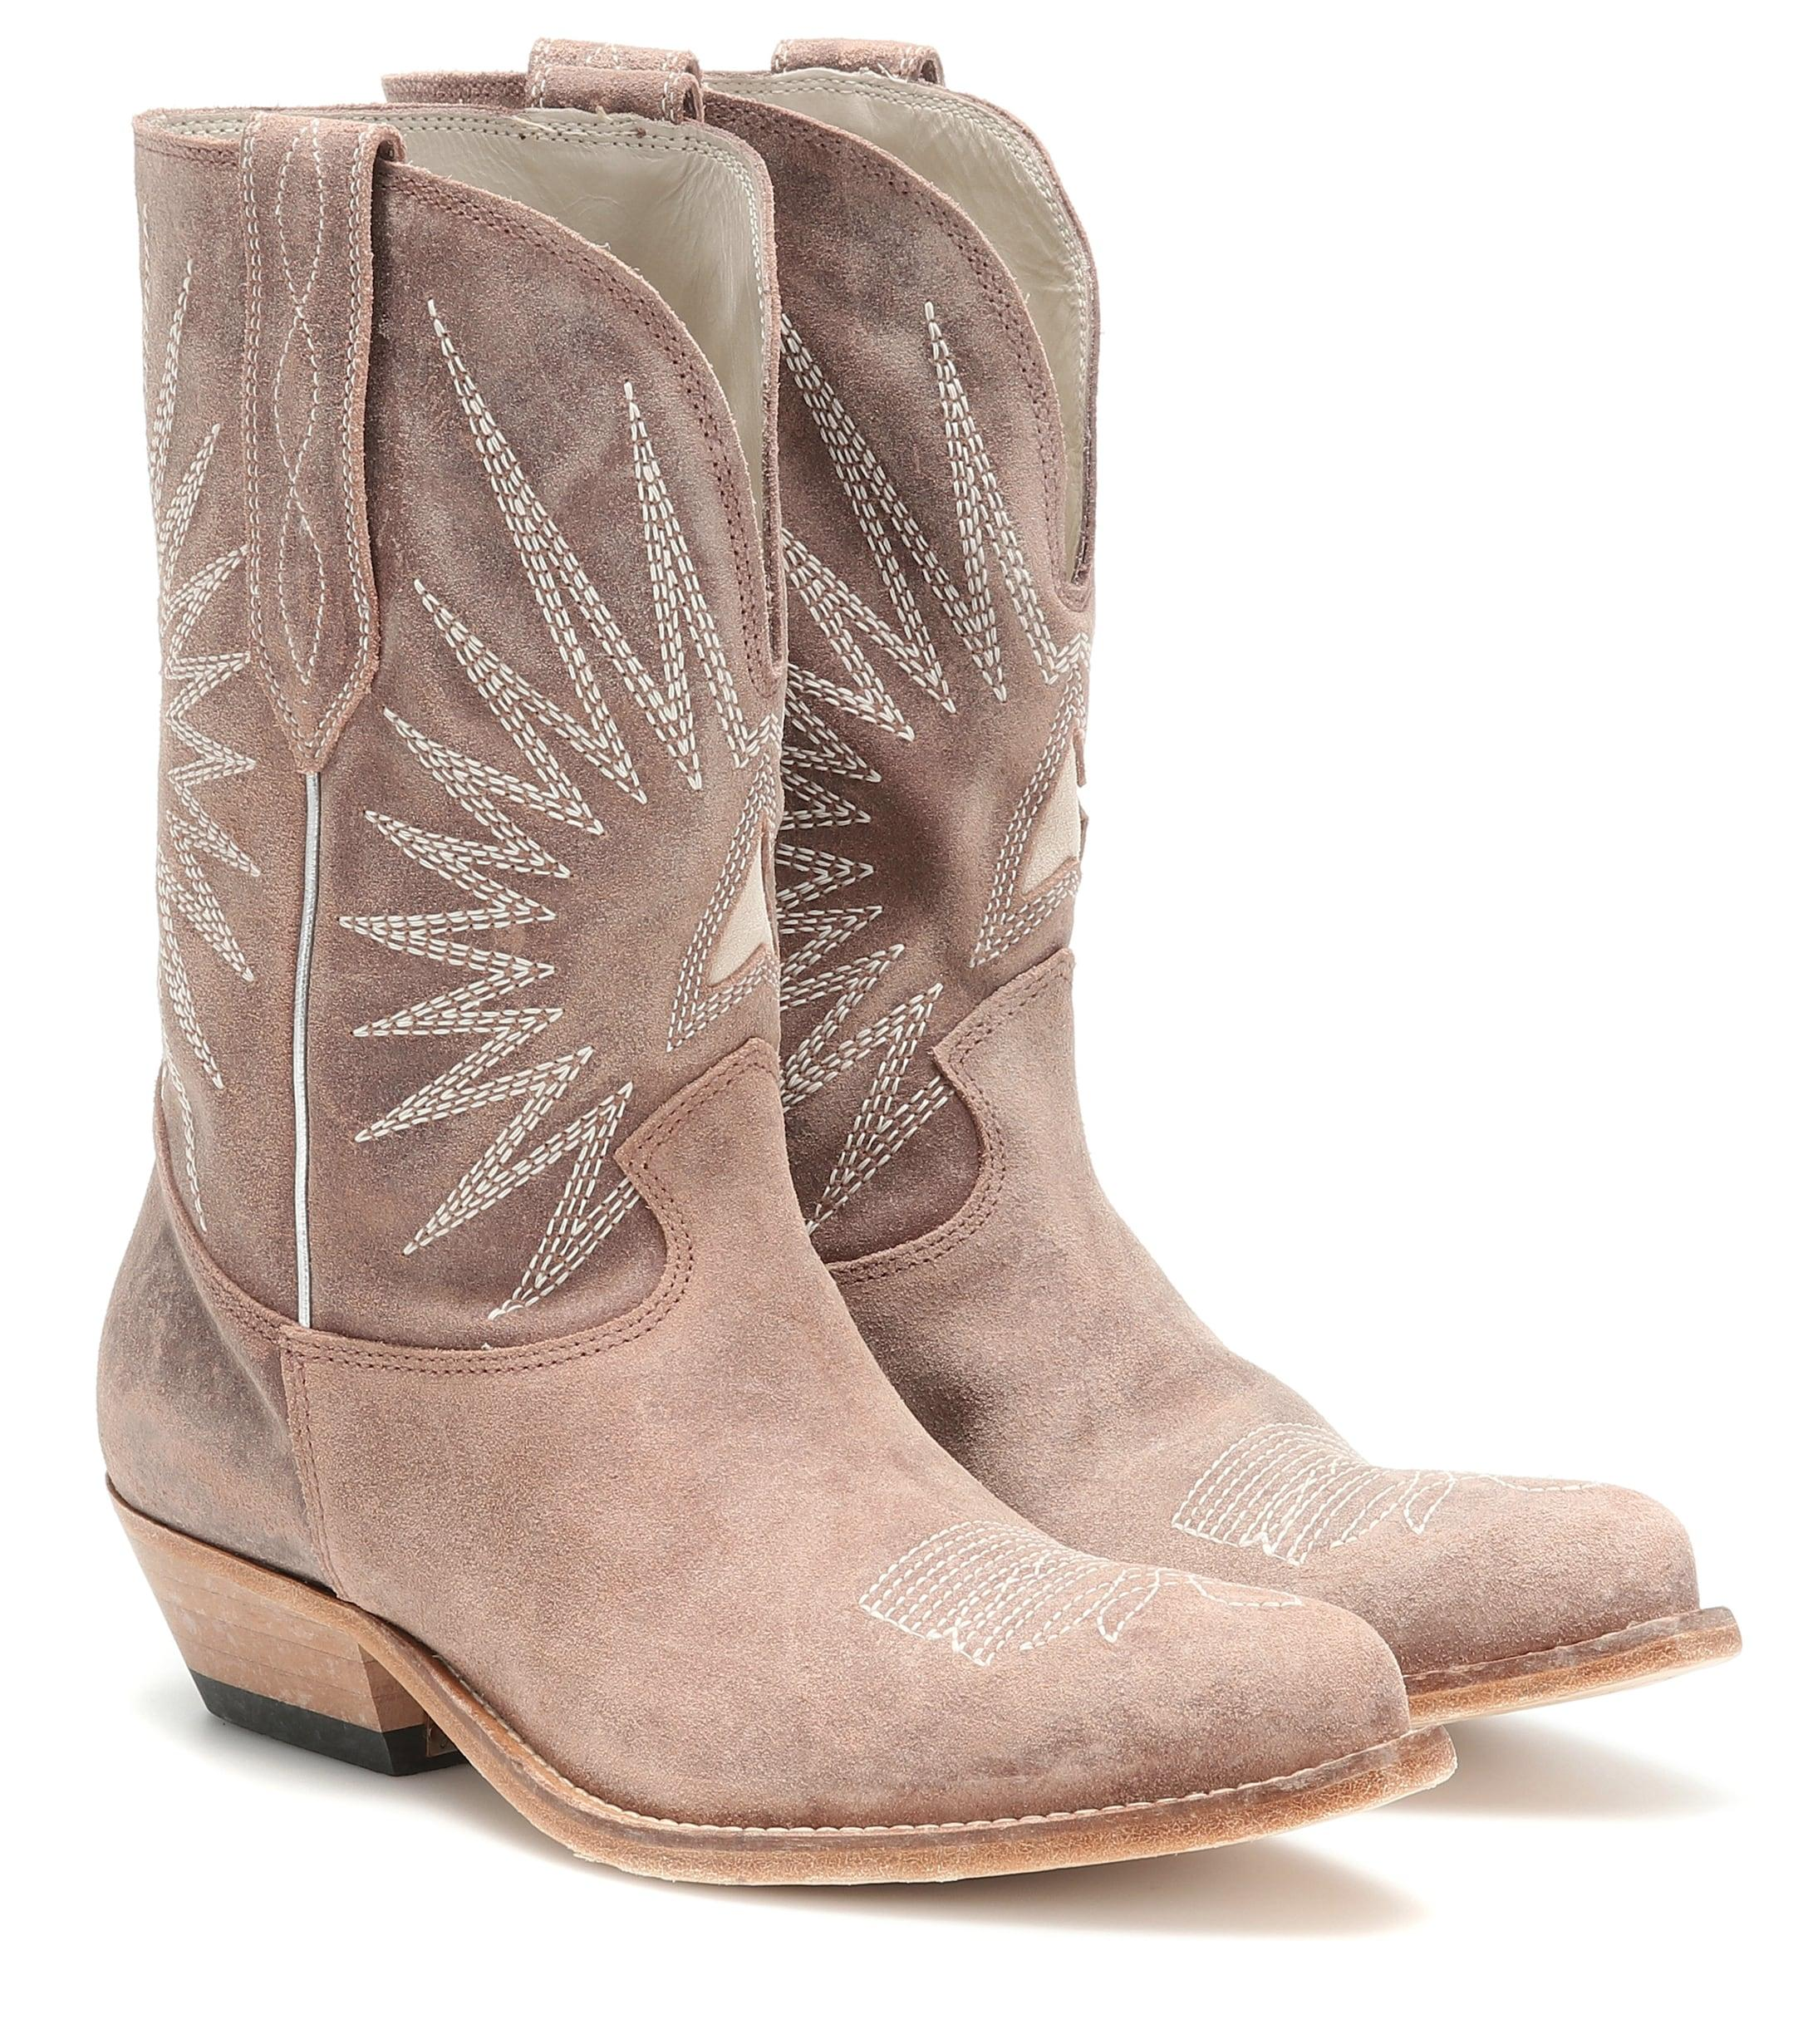 c1c62cefd3a Golden Goose Deluxe Brand - Natural Wish Star Leather Cowboy Boots - Lyst